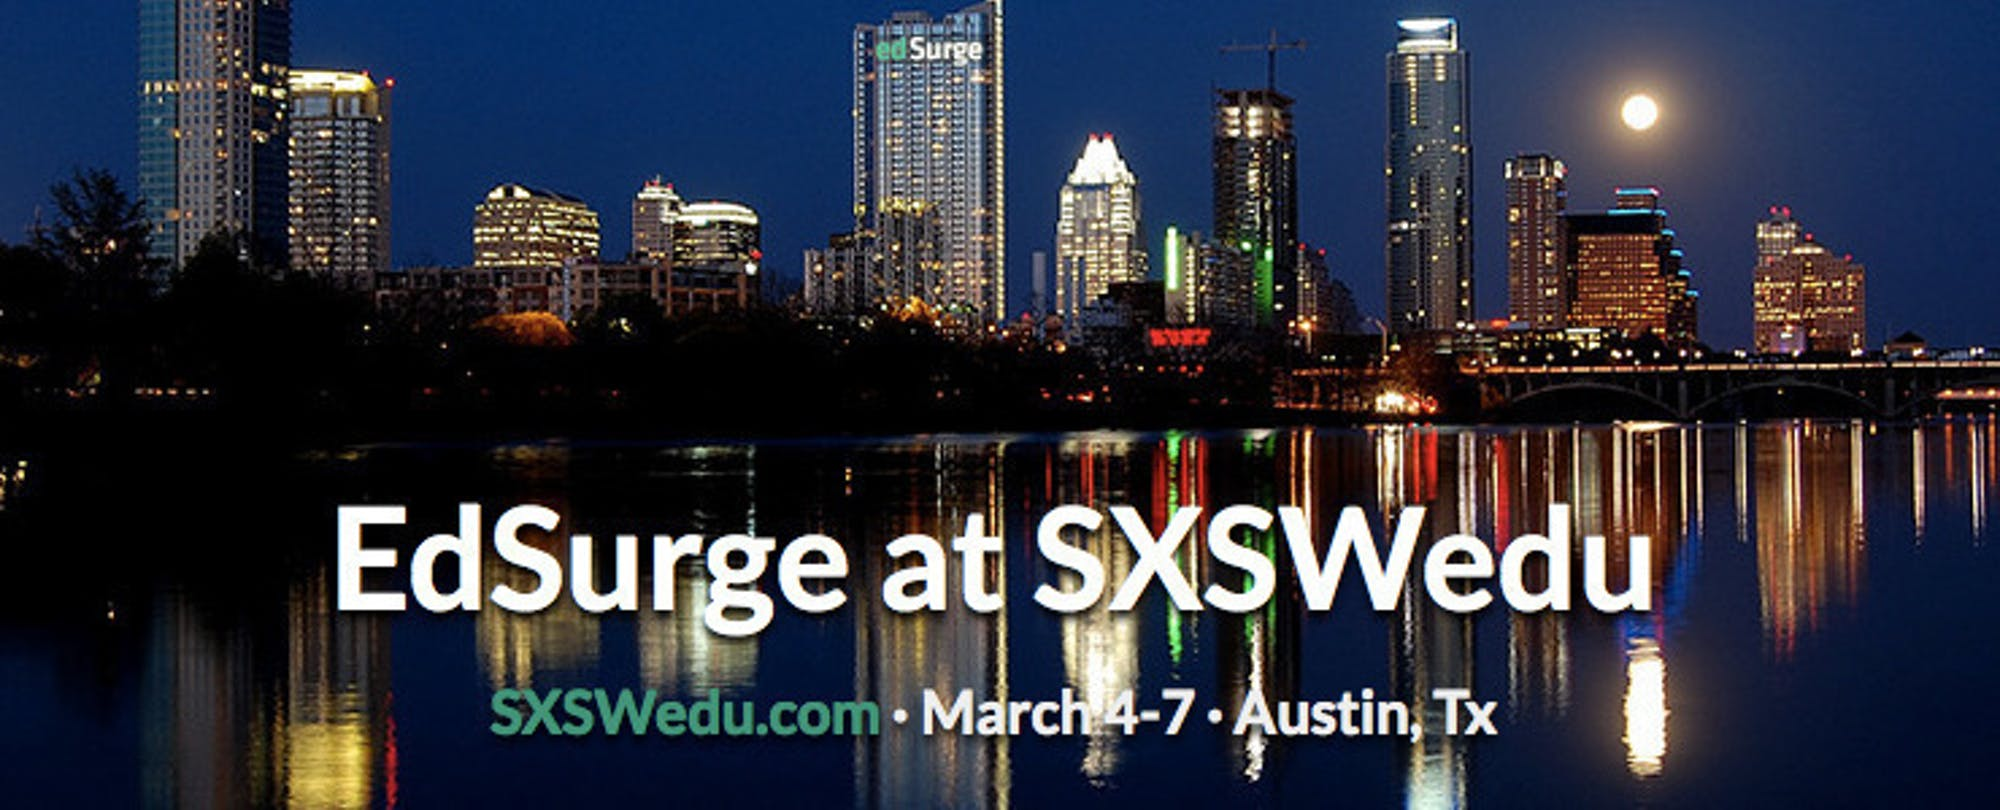 SXSWedu Highlights: Maker education, databases of students, personalized learning